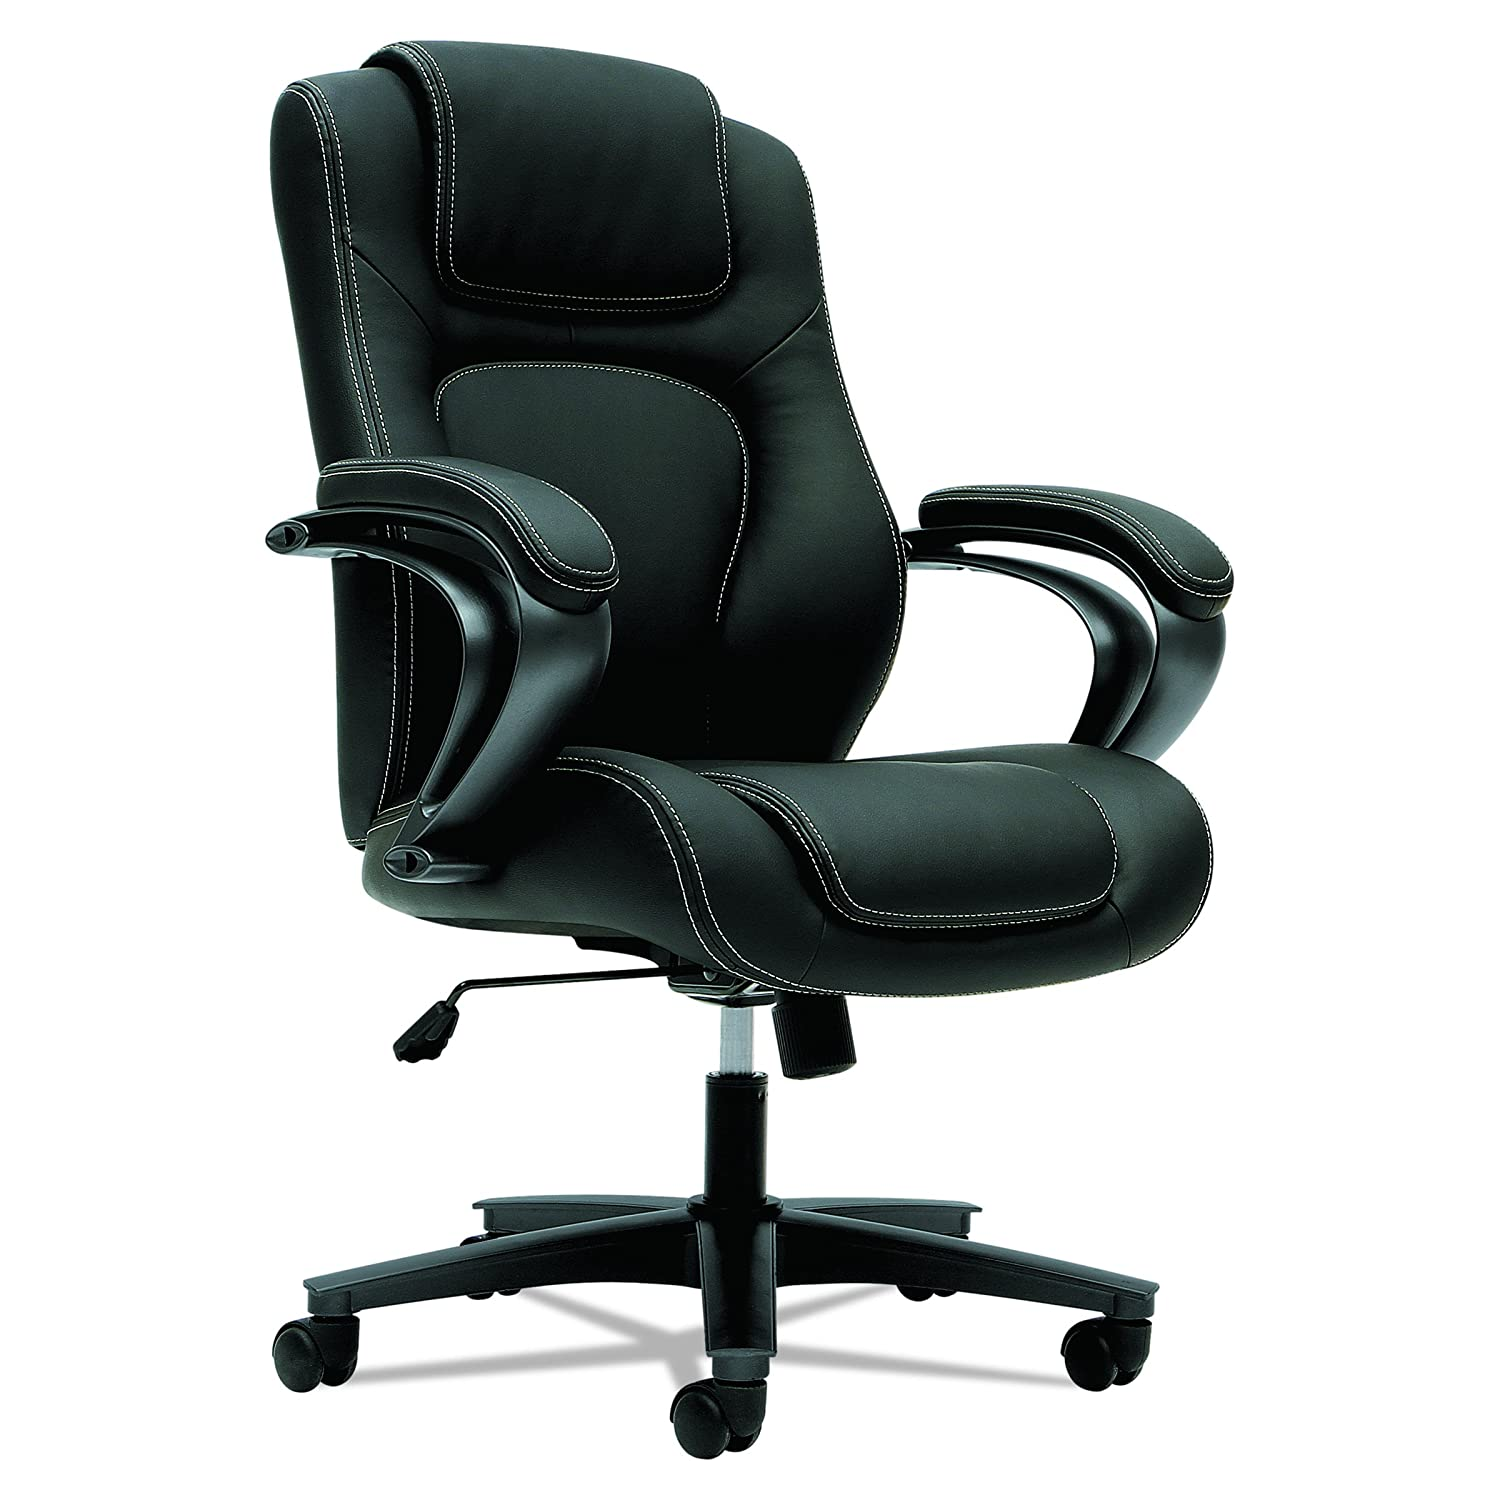 Amazon basyx by HON Managerial fice Chair High Back